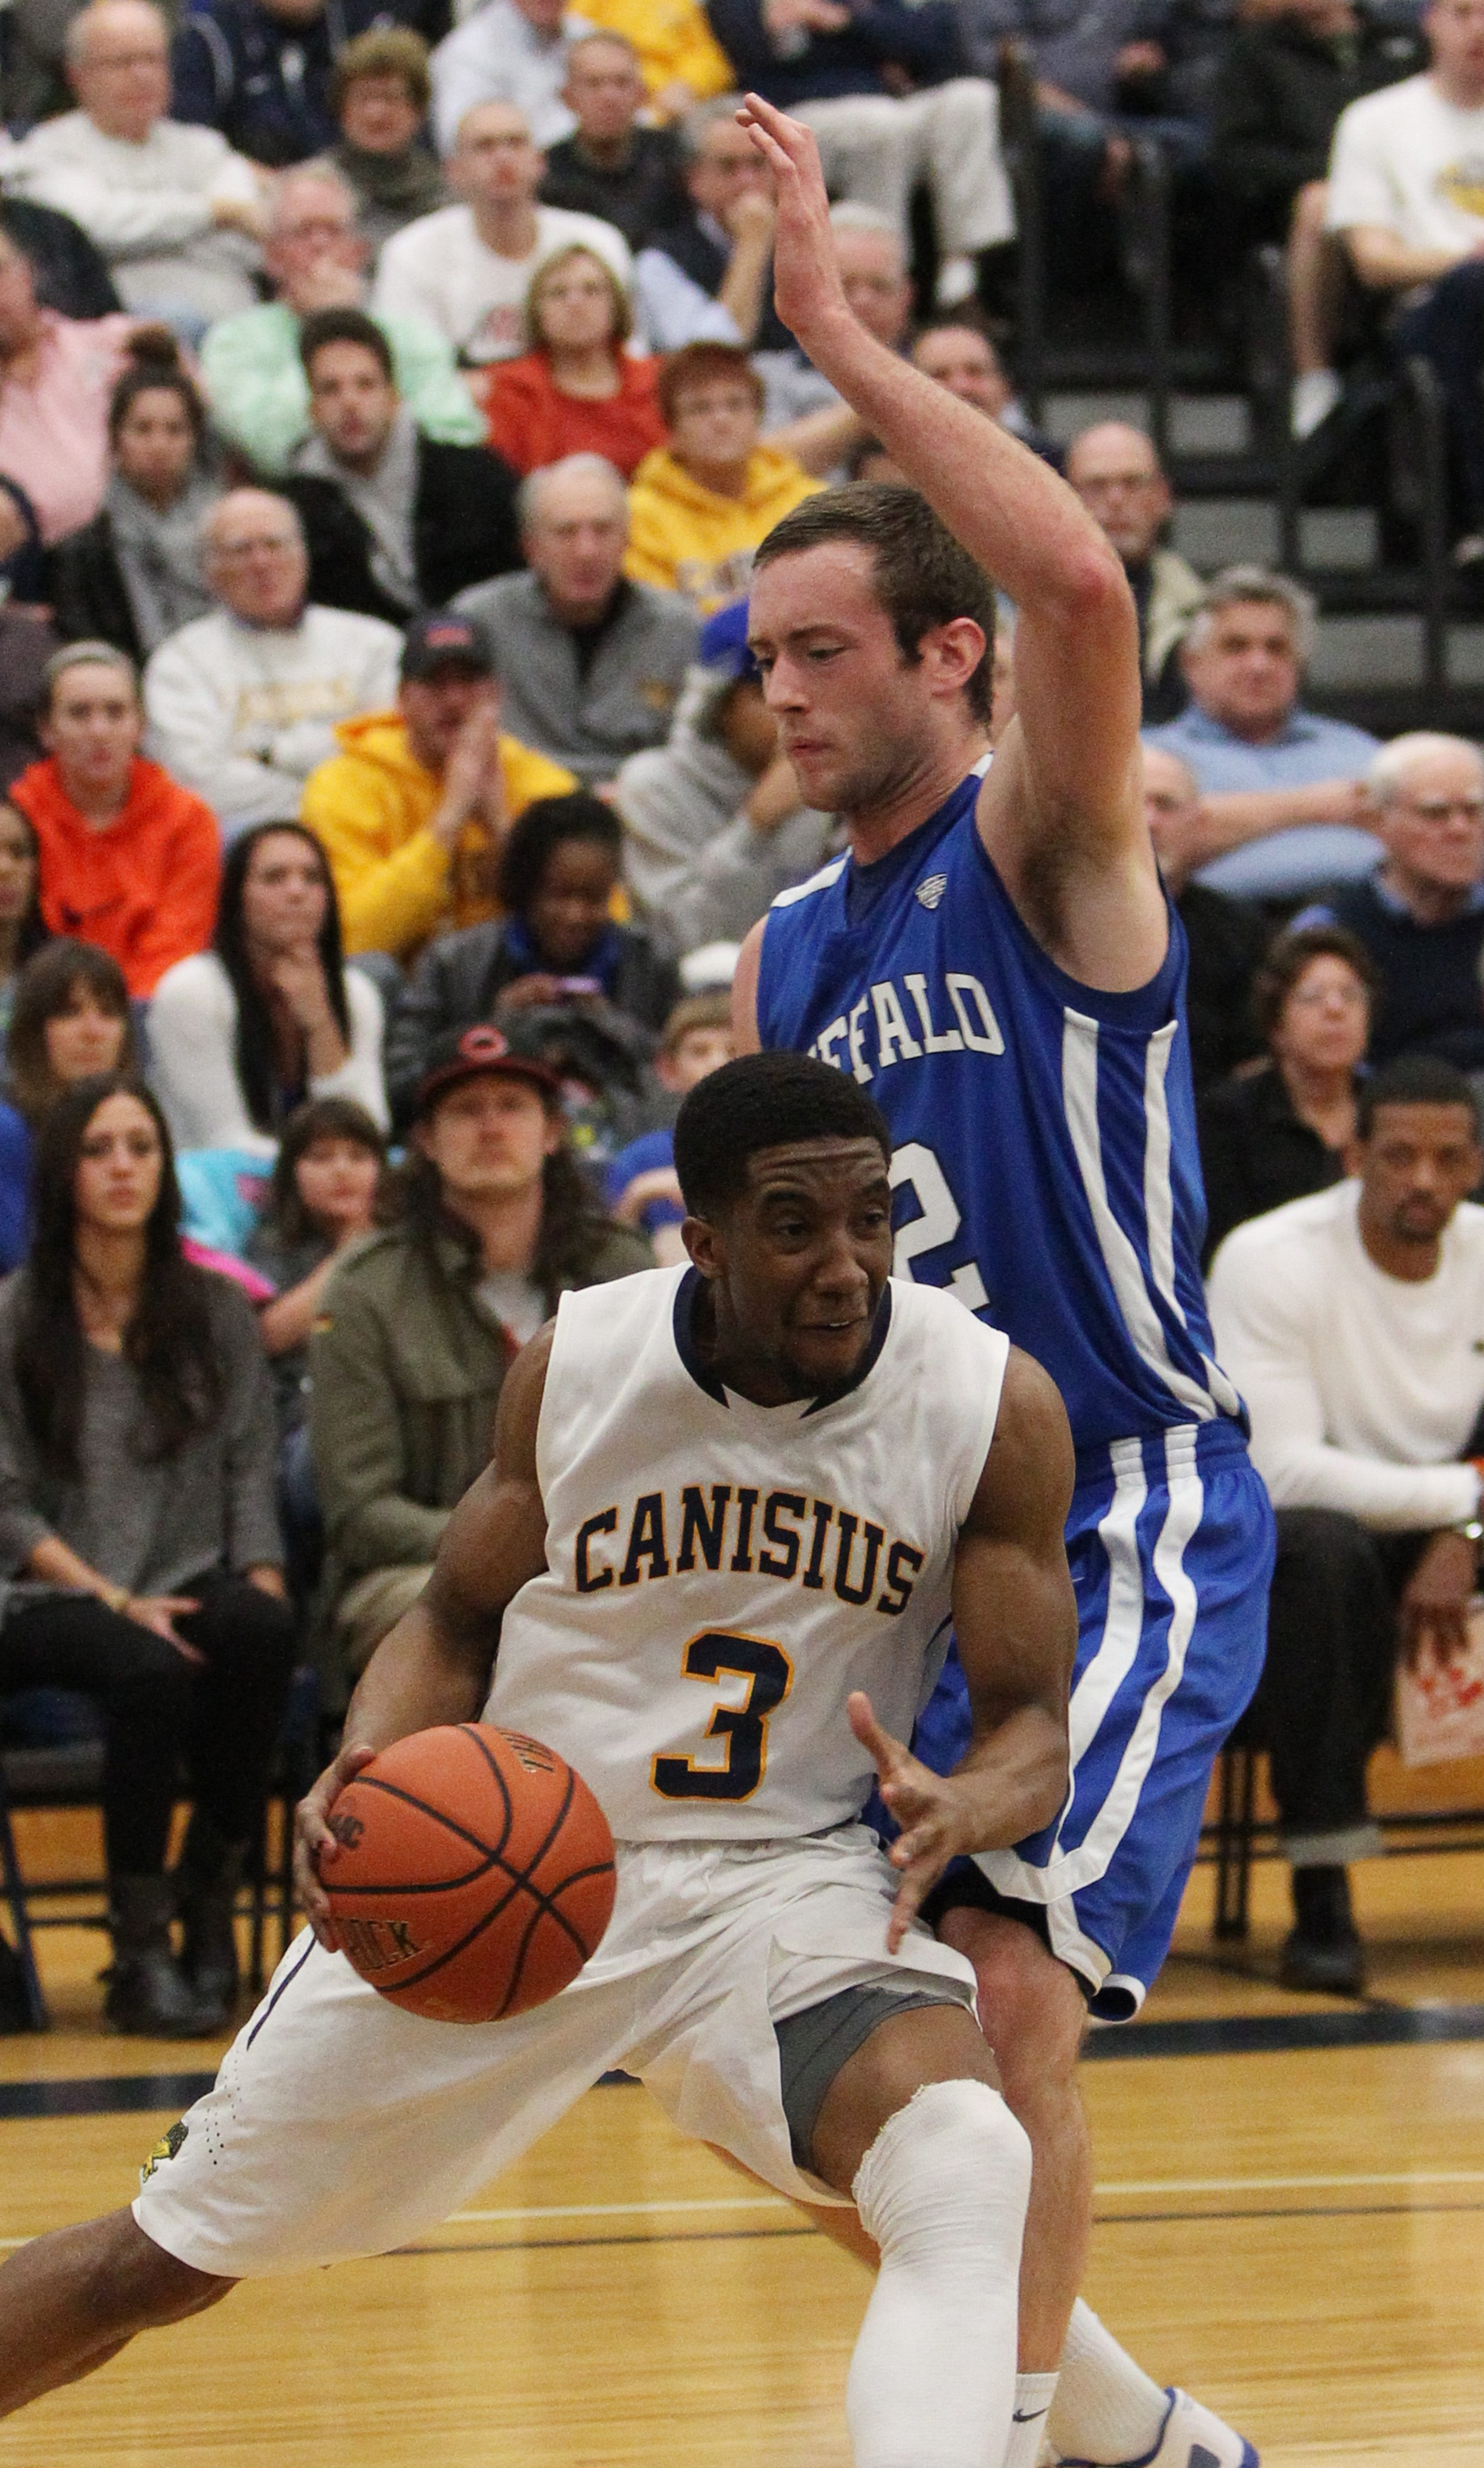 Canisius' Harold Washington tries to drive around UB's Will Regan during Tuesday night's game.